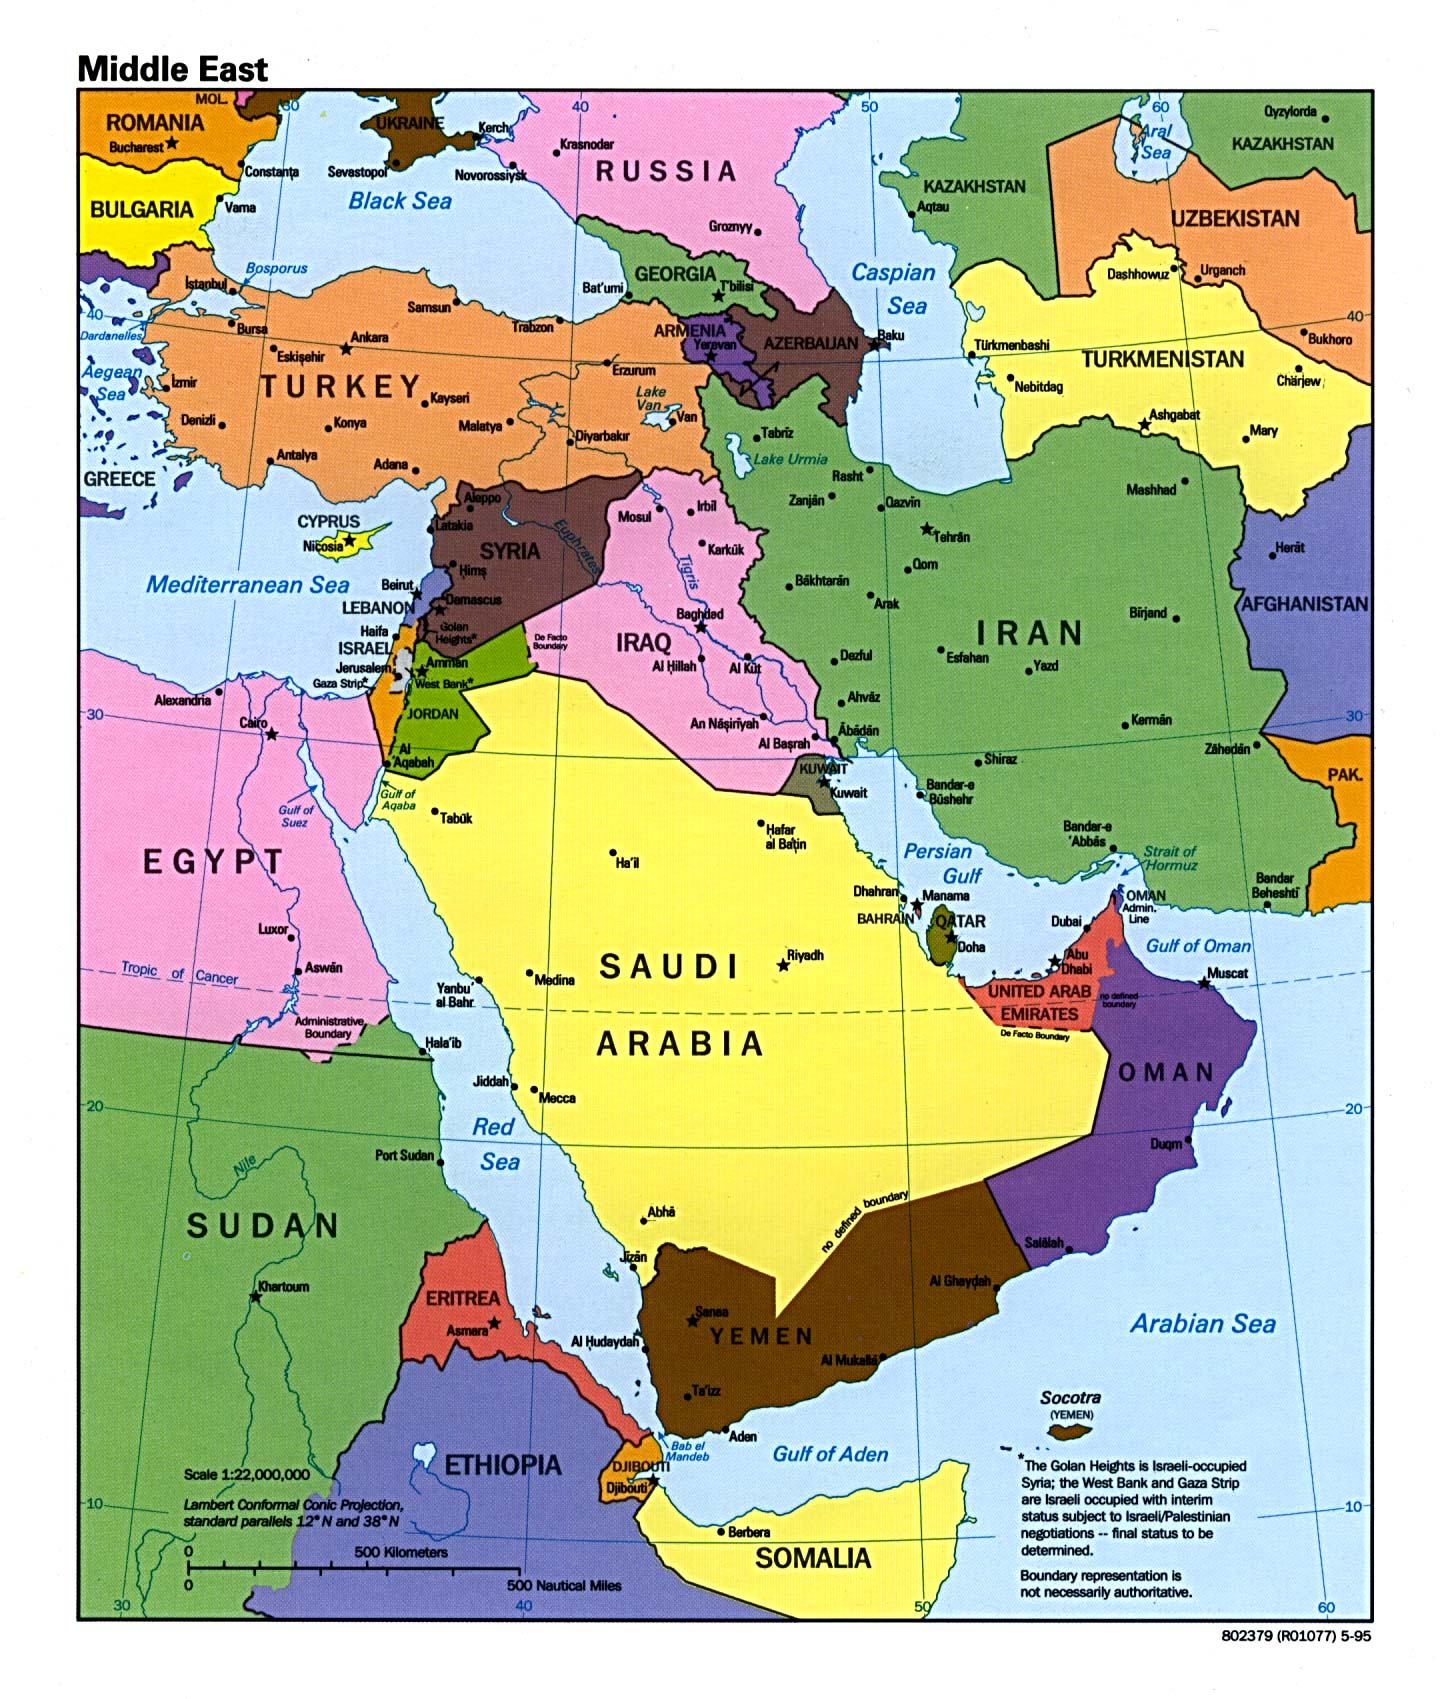 Middle East Map 1930